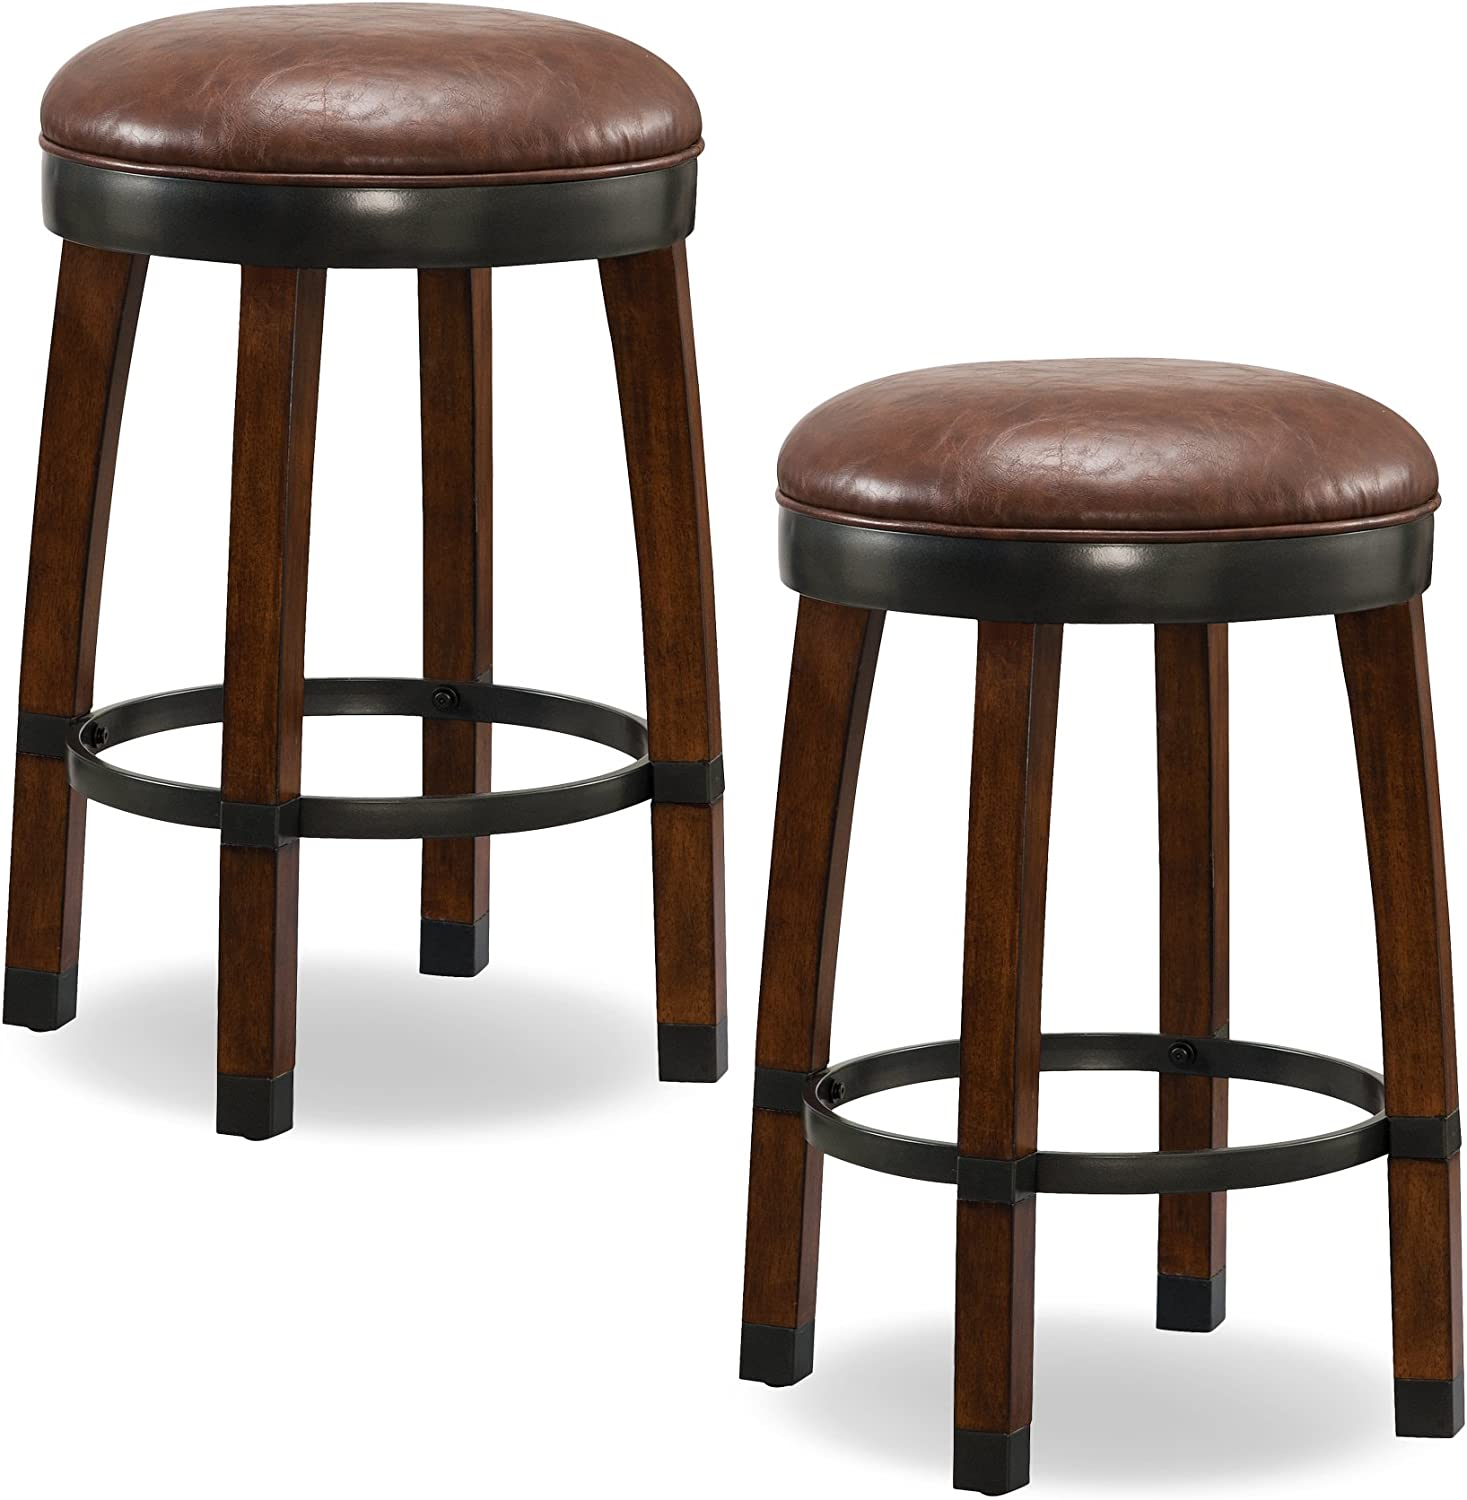 Leick Favorite Finds Seattle Mall Counter Height Bar Stool Brown Very popular of Set 2